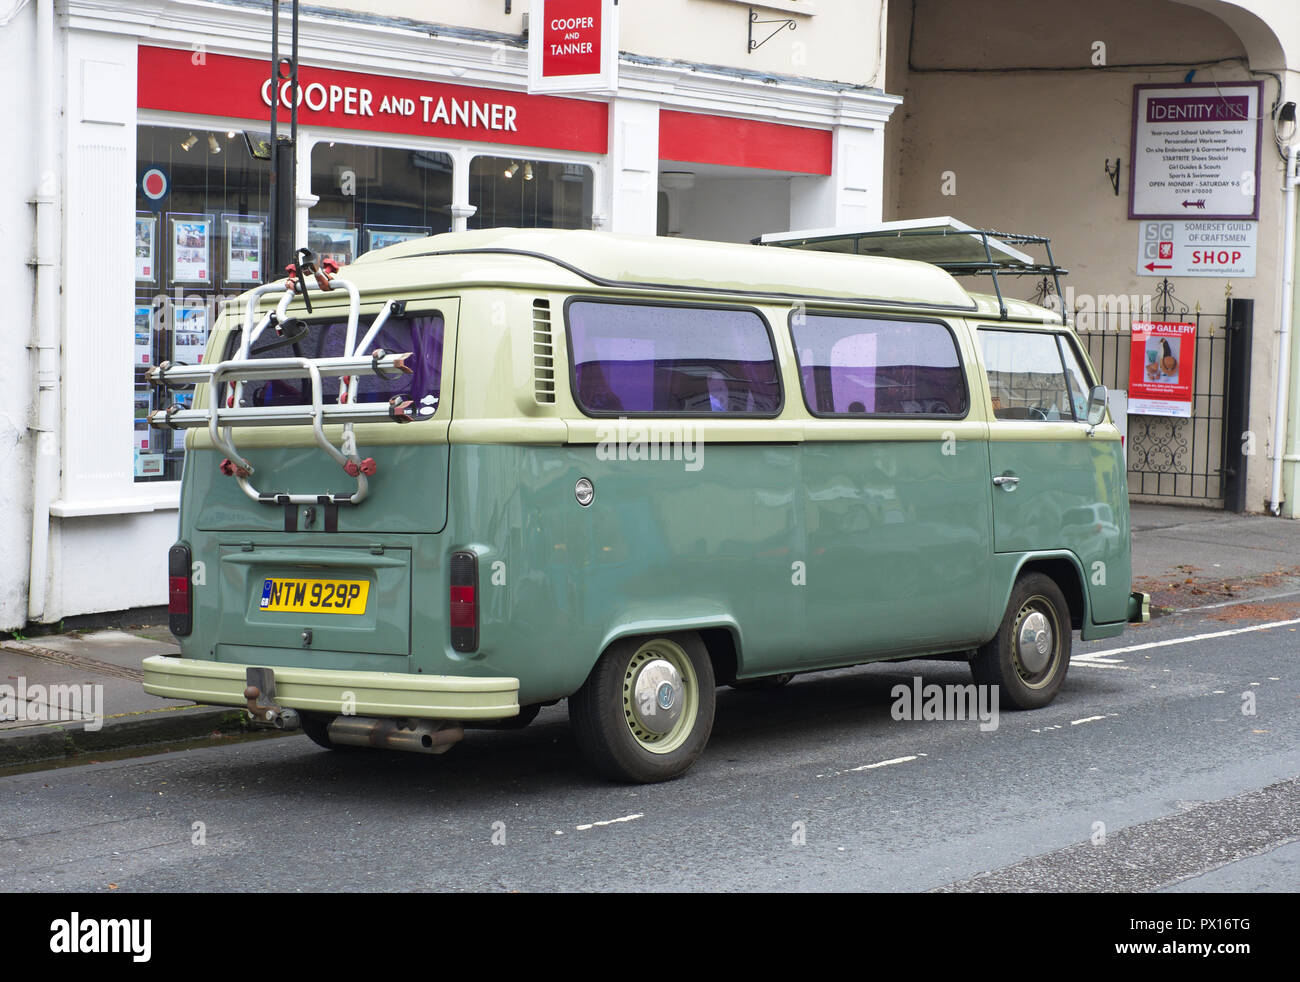 A fully restored classic 1976 Volkswagen delivery/camper van parked on Broad St., Wells, Somerset, UK - Stock Image